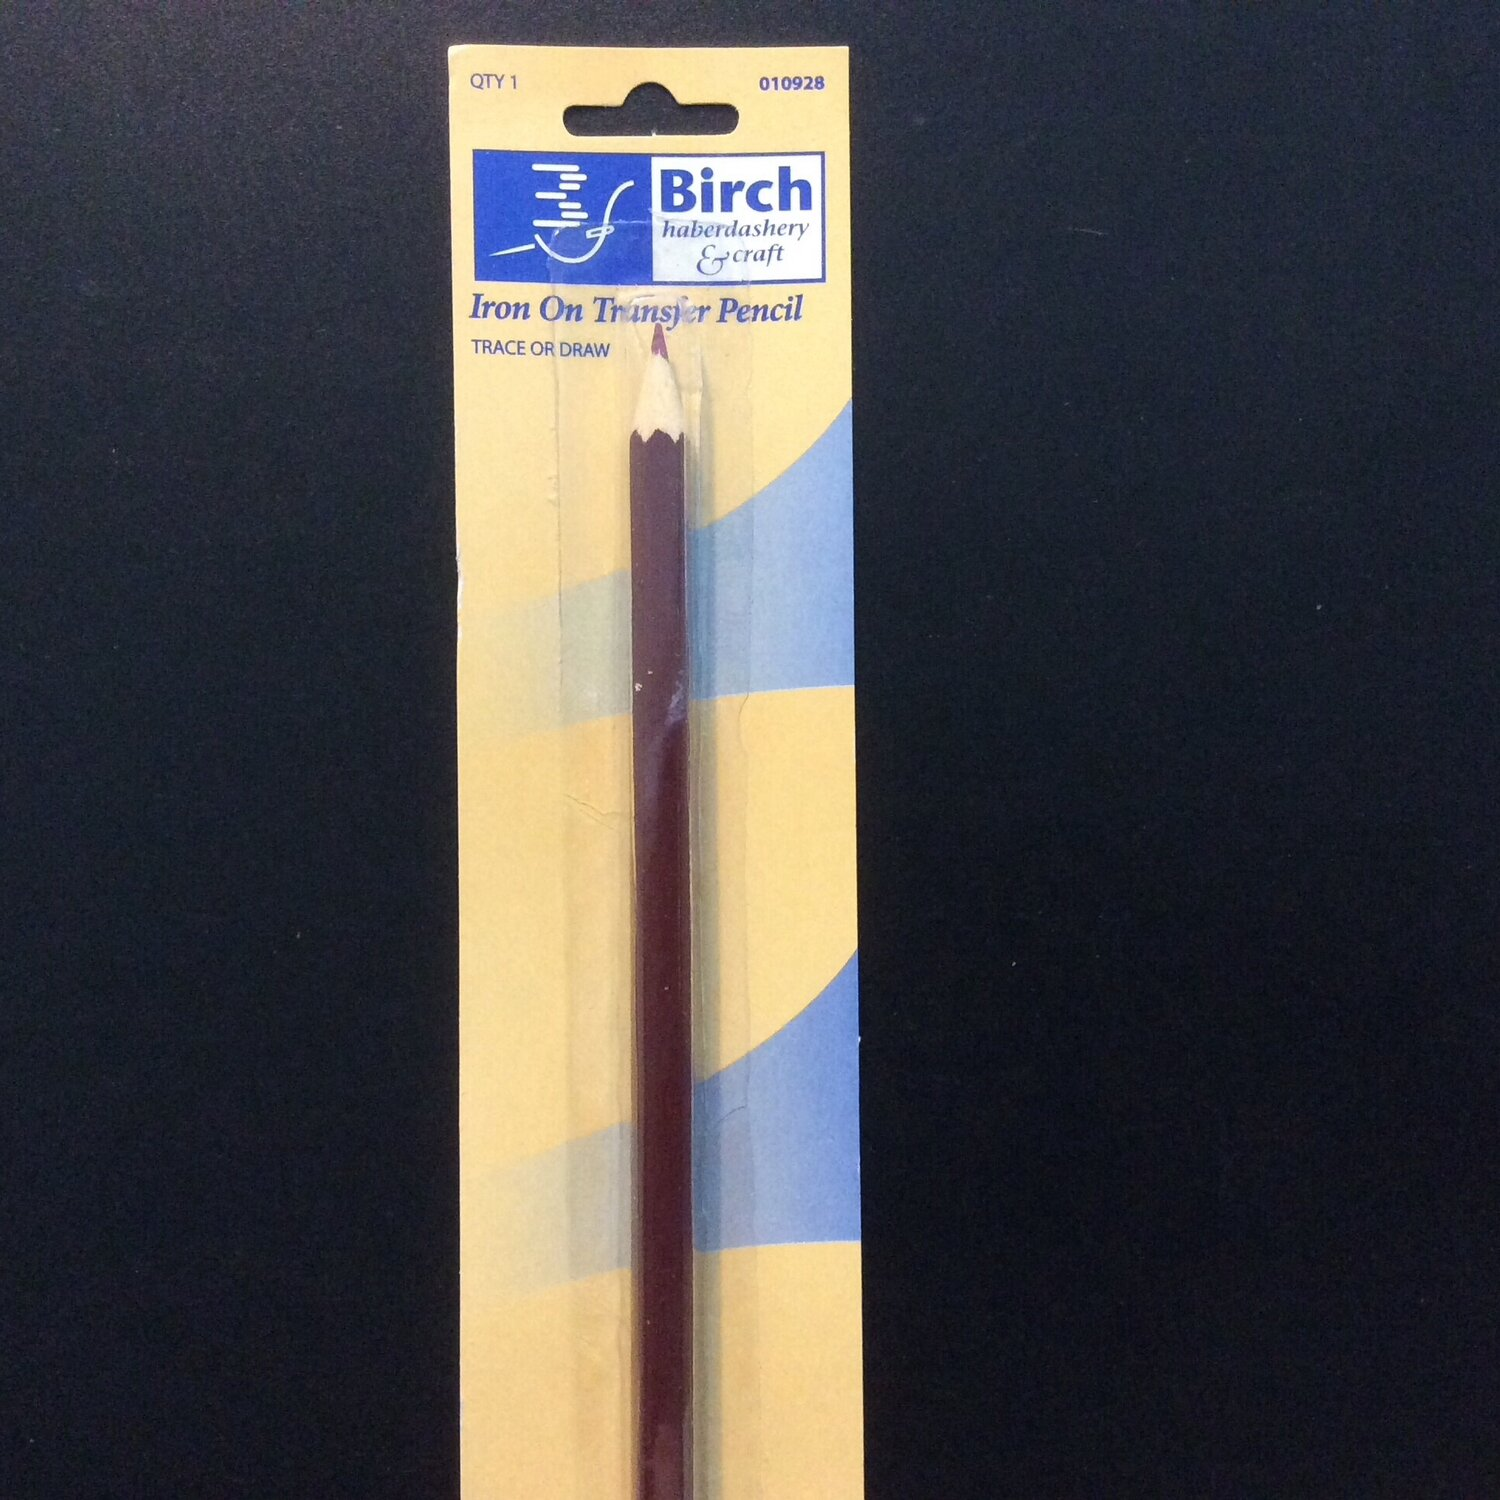 Birch Iron-on Transfer Pencil